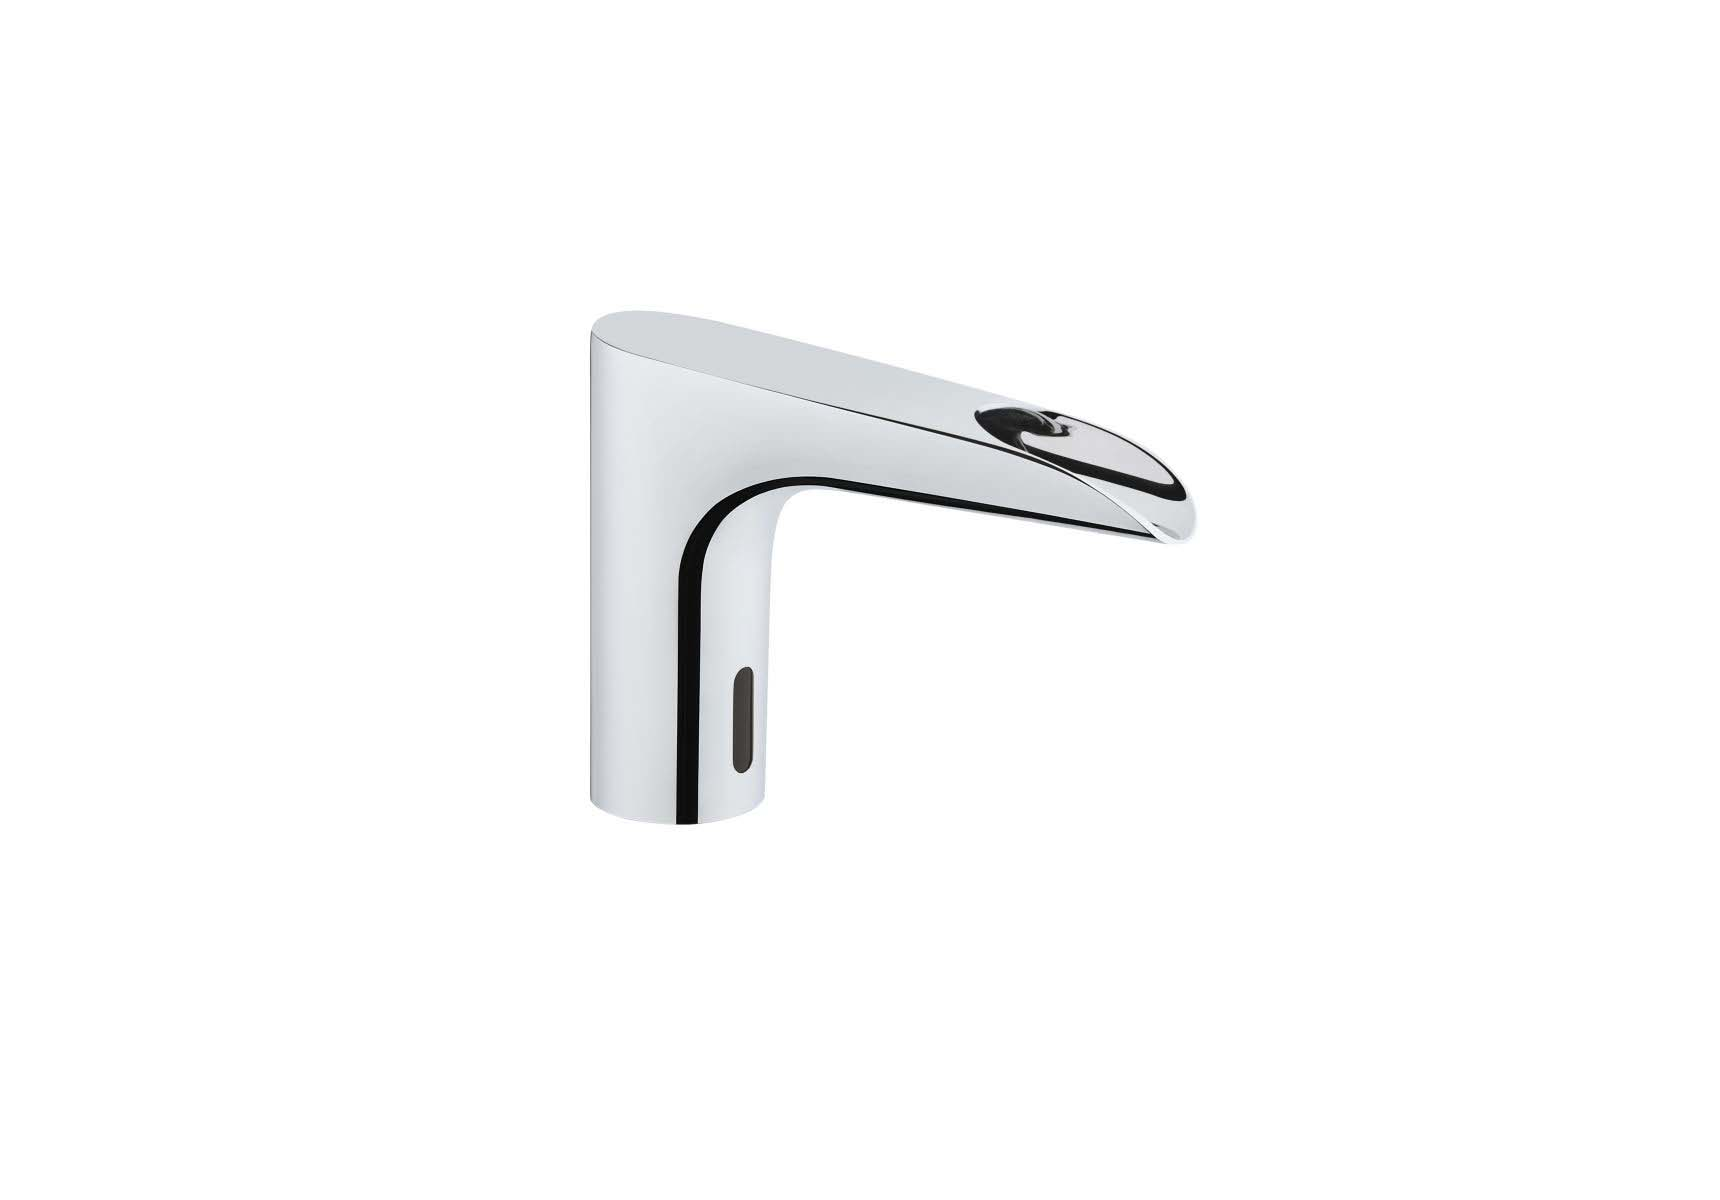 Aquatech Photocell Basin Mixer (Cascade Flow - Mains - Single Water Inlet)